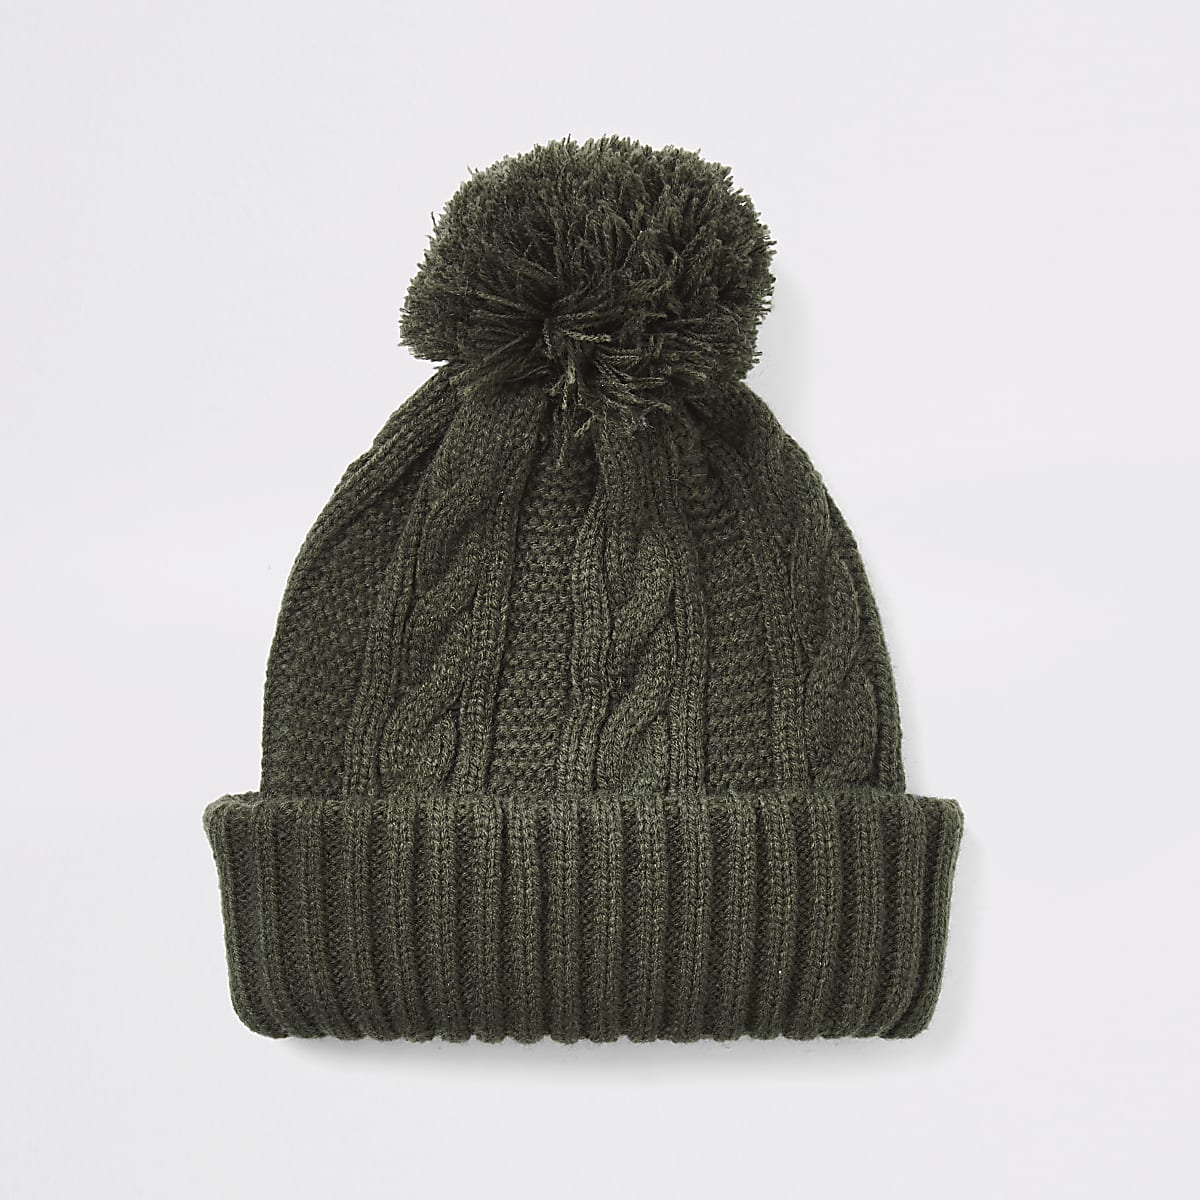 Khaki cable knitted bobble beanie hat